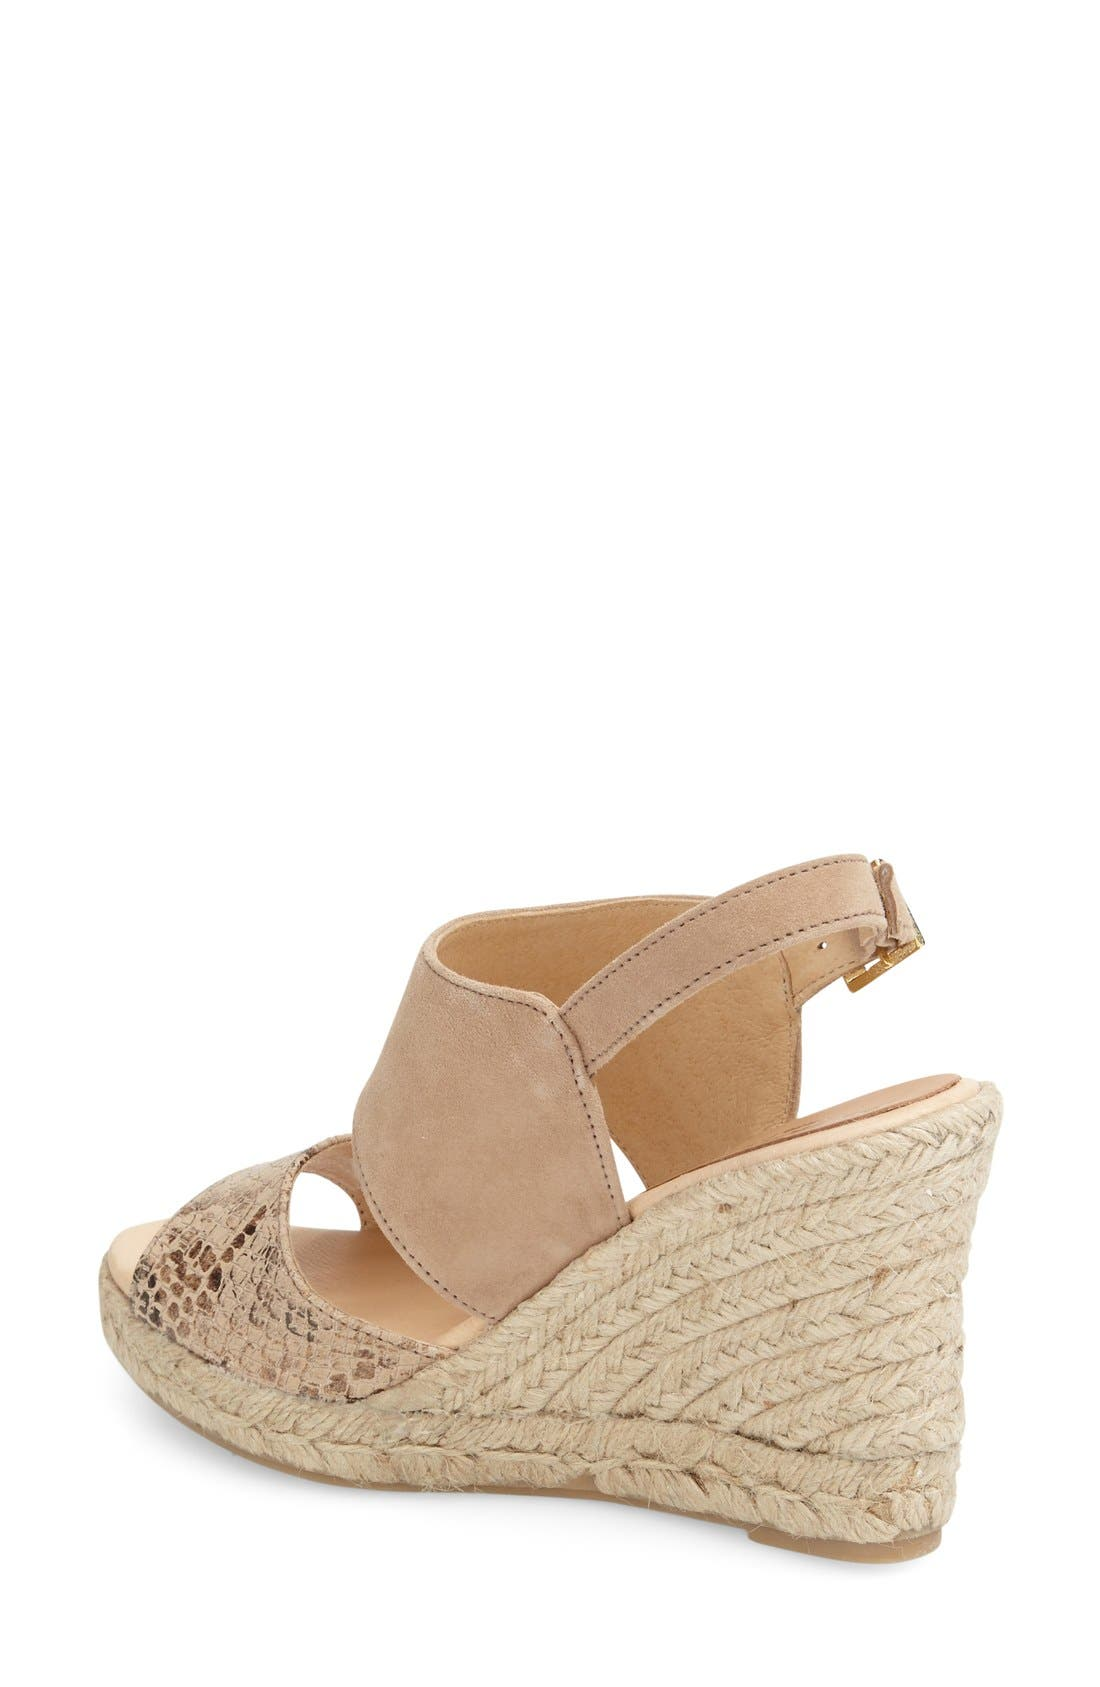 Alternate Image 2  - patricia green 'Elise' Wedge Sandal (Women)